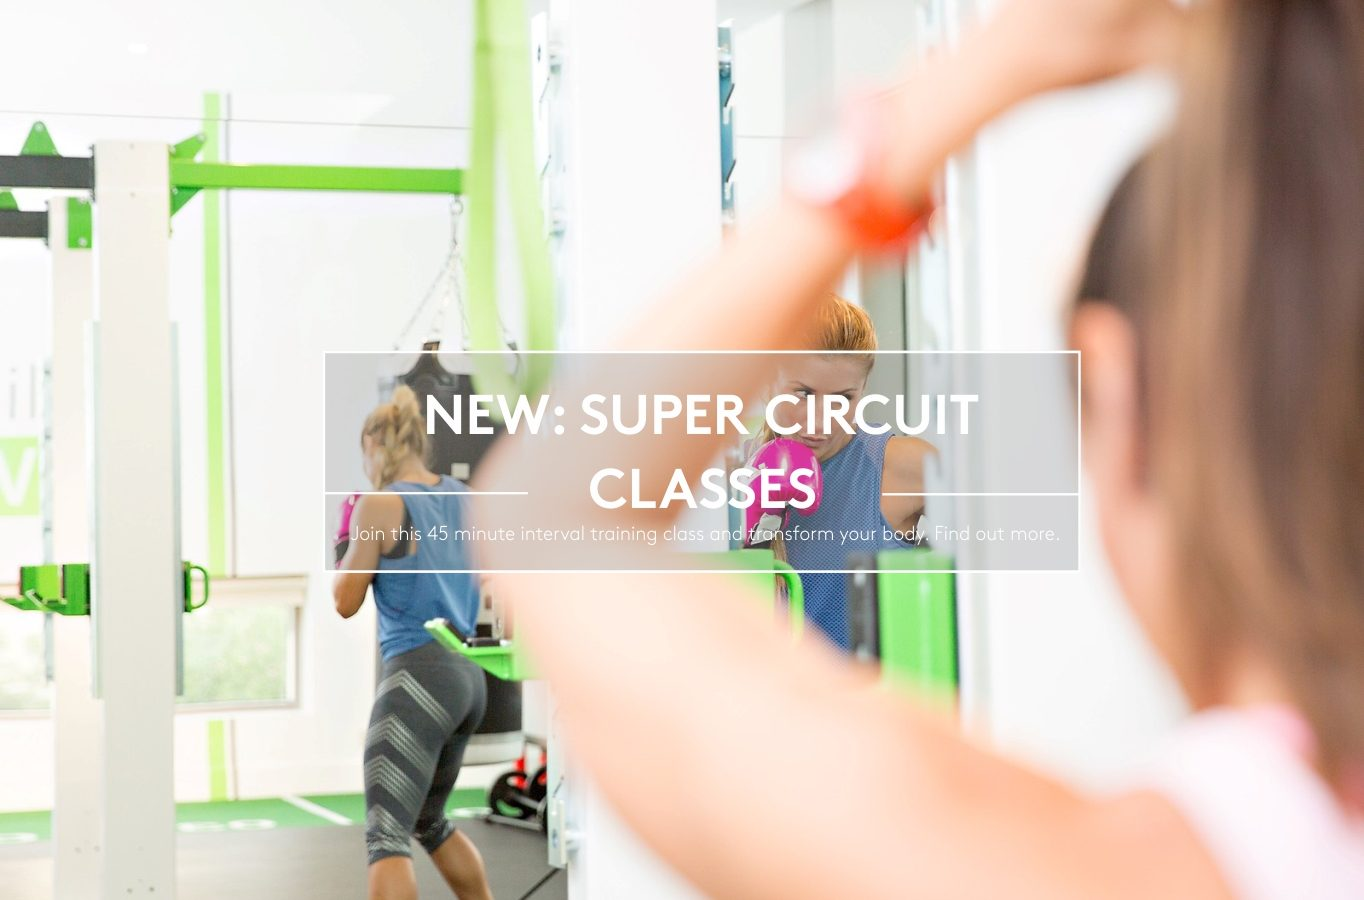 Super Circuit Classes at The Hundred